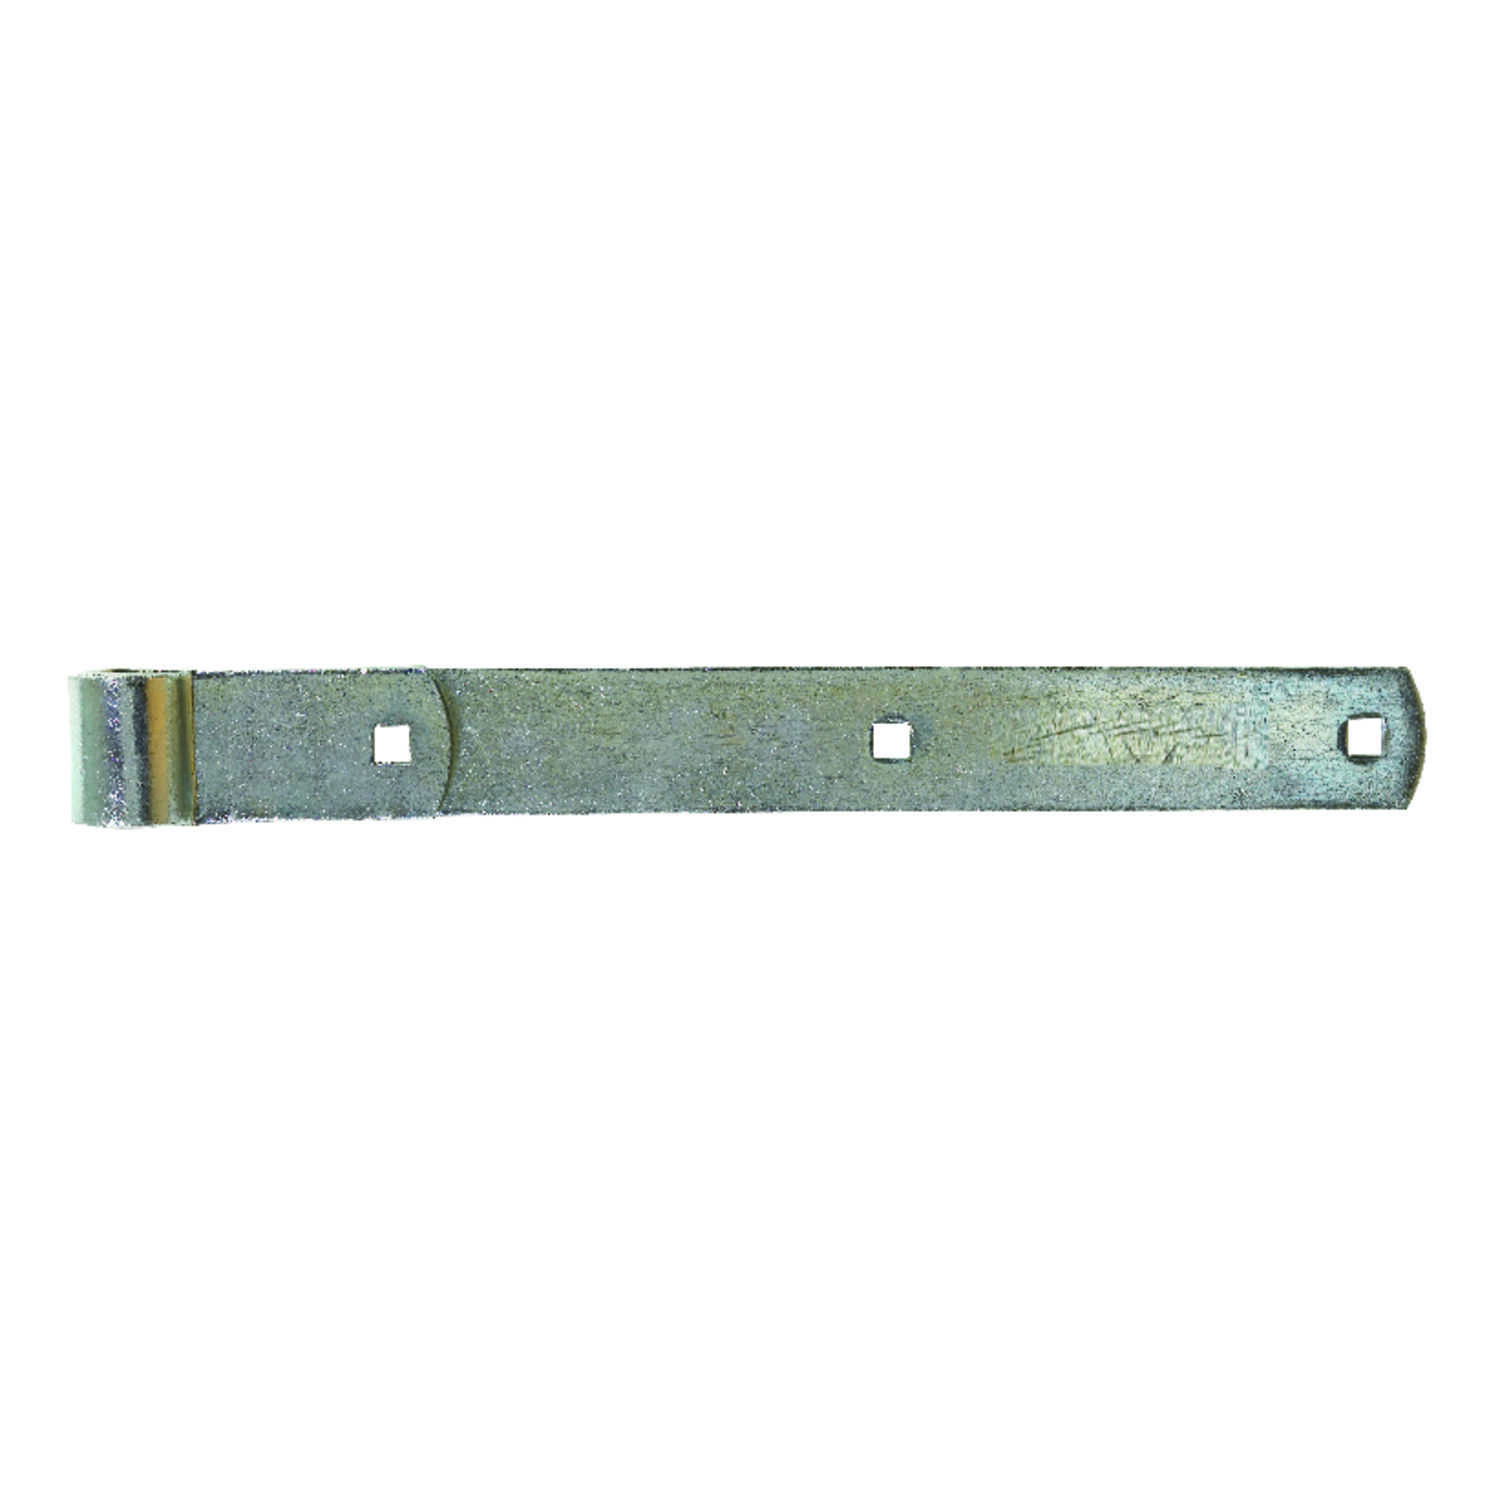 Ace  14 in. L Zinc-Plated  Steel  Hinge Strap  1 pk